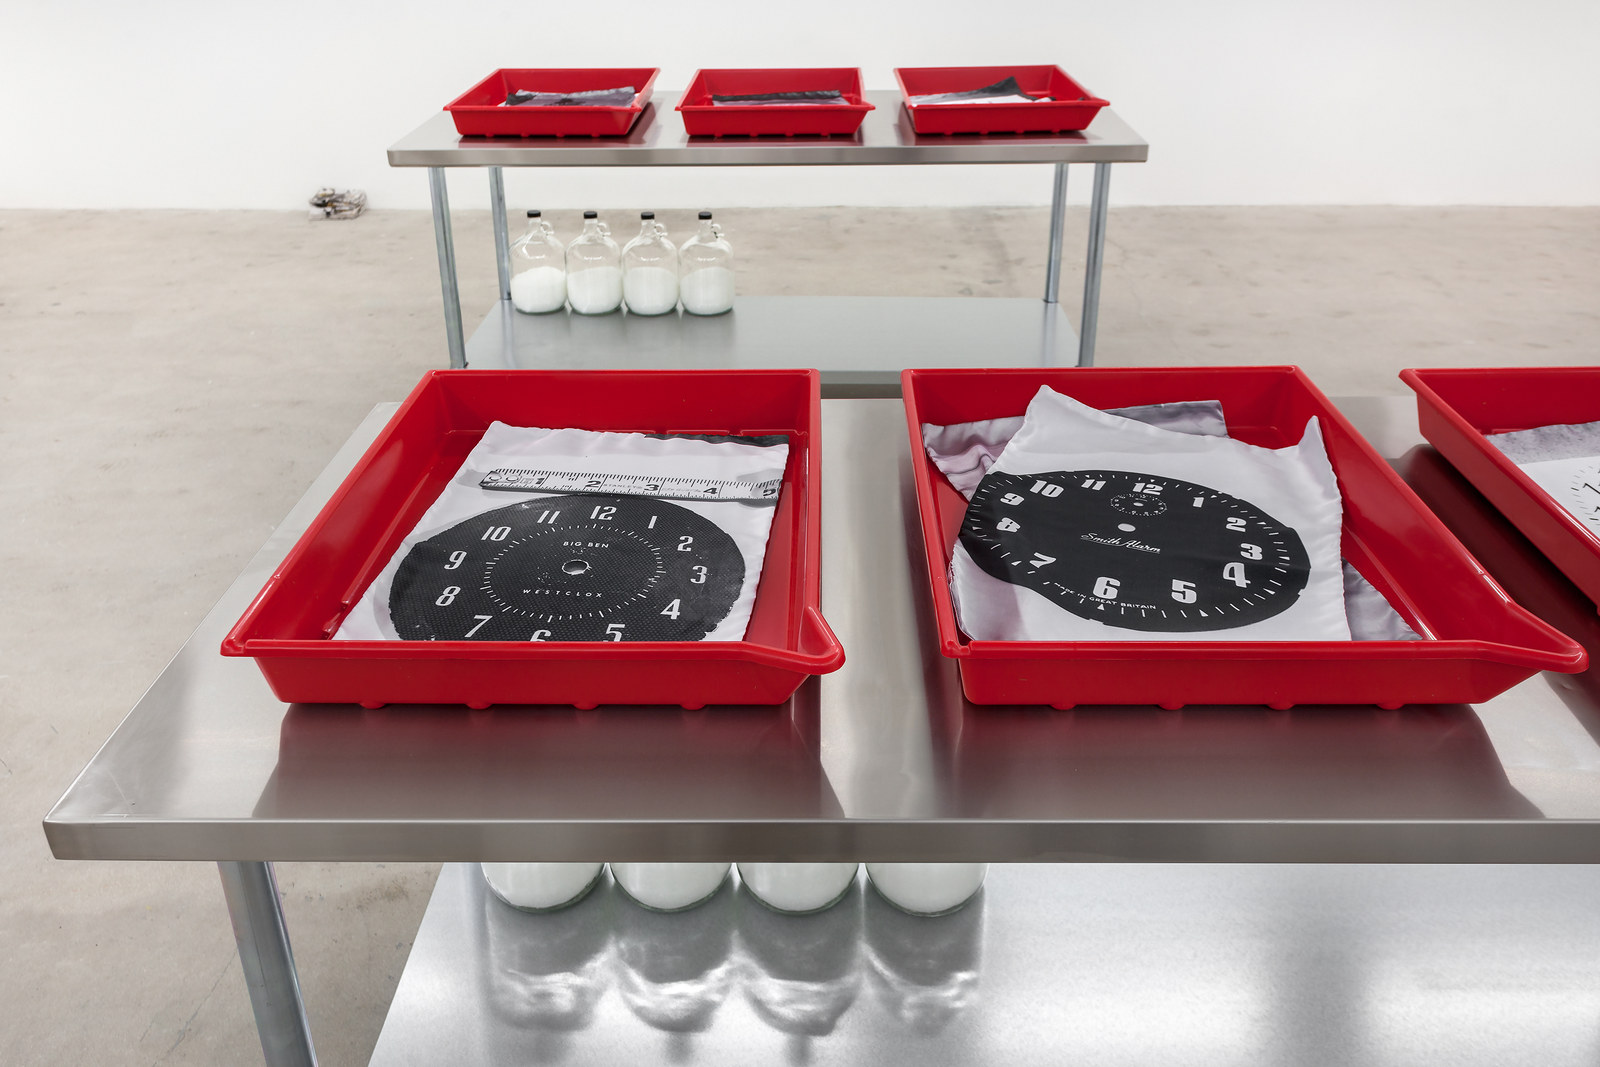 ARH_Untitled Procession (WATCH LIST)_stainless steel table, photo developing trays, inkjet on satin, glass jugs, Epsom salts_37 x 72 x 30_2016_MJ&A